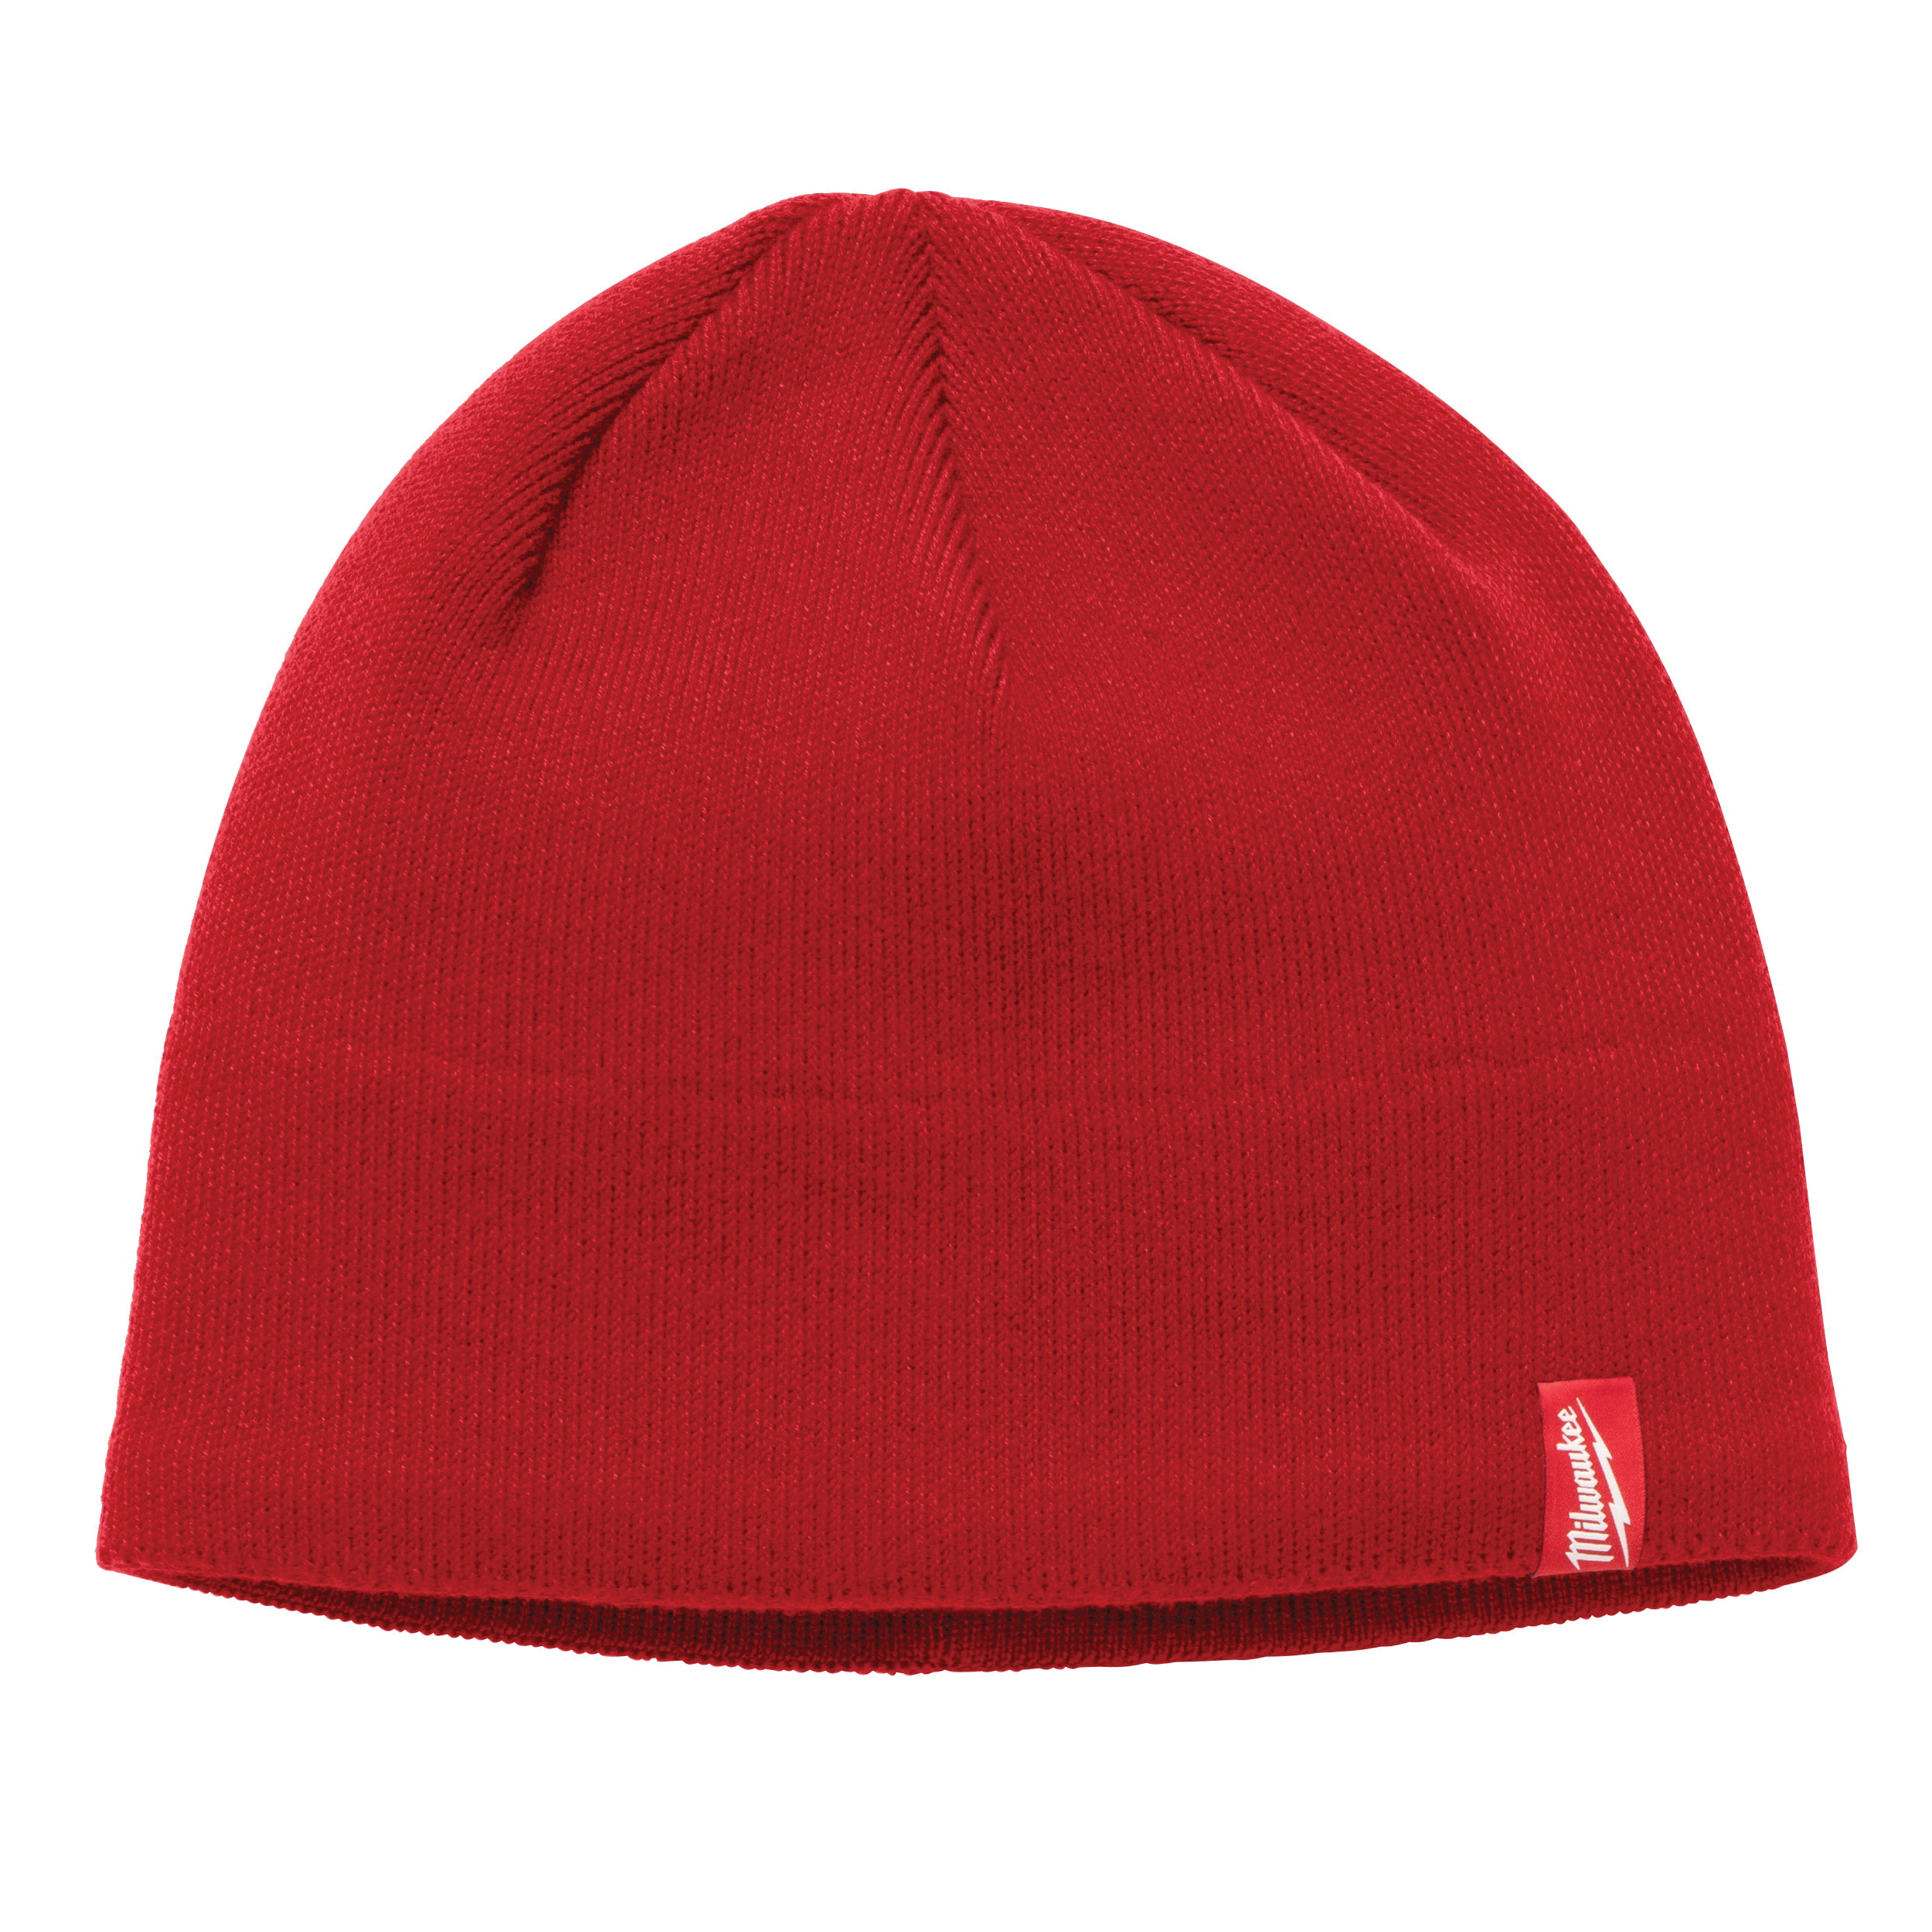 Milwaukee® 502R Insulated Wind/Water-Resistant Knit Hat Fleece Lined Knit Hat, Universal, Red, Fleece Lined Polyester, Pull Over Closure